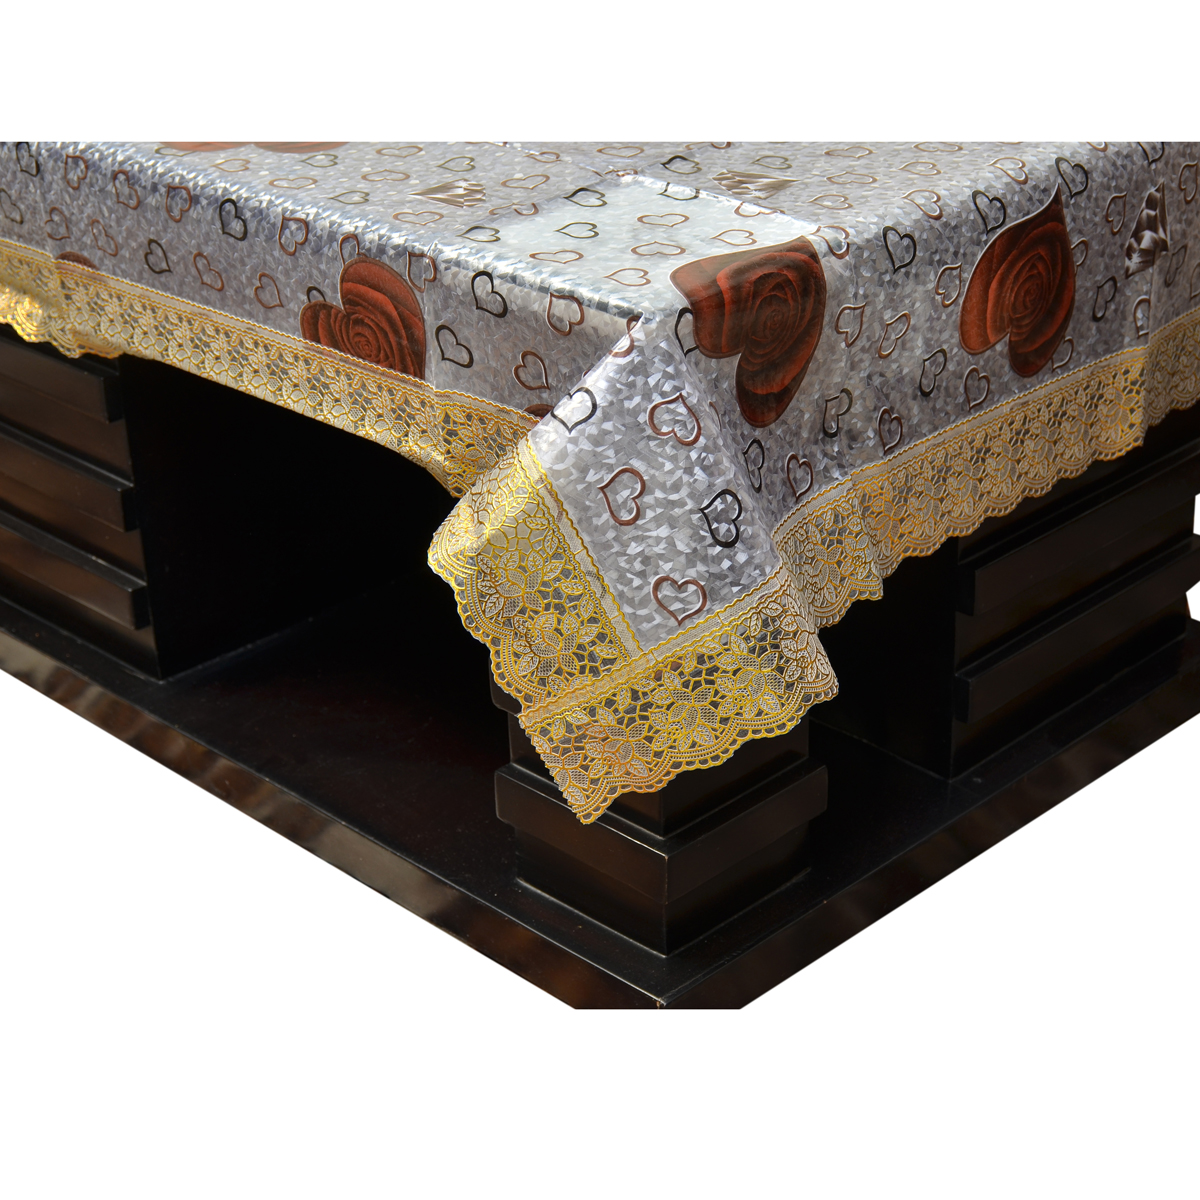 Kuber Industries™ Waterproof 3D Design Center Table Cover 4 Seater 40*60 Inches (Exclusive Design With Golden Lace) (Code-CT0007)